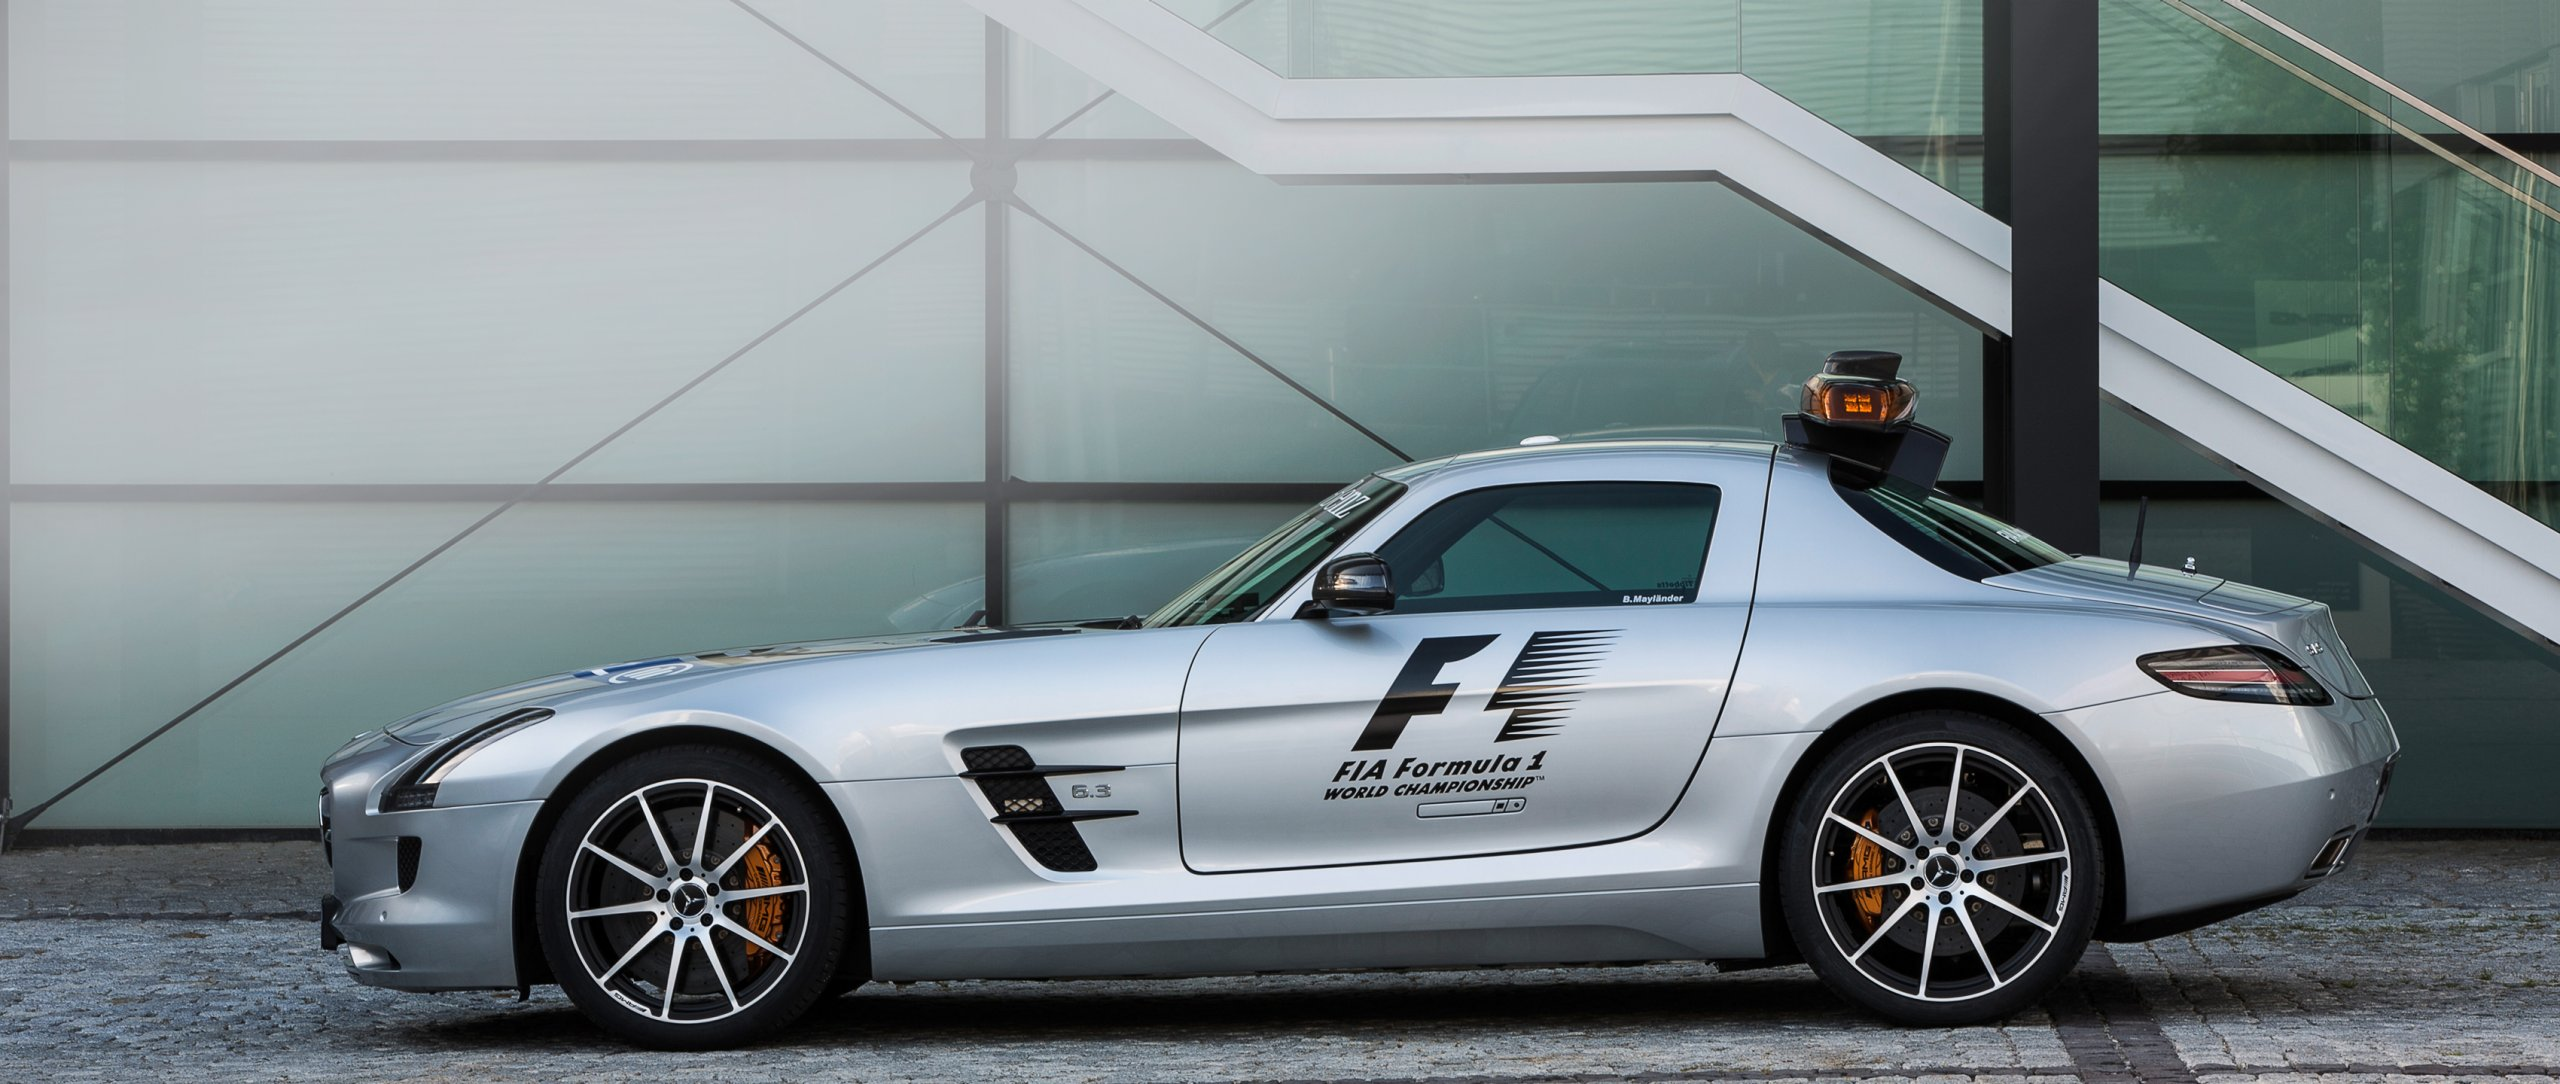 The silver Mercedes-AMG GT R official FIA F1 Safety Car.